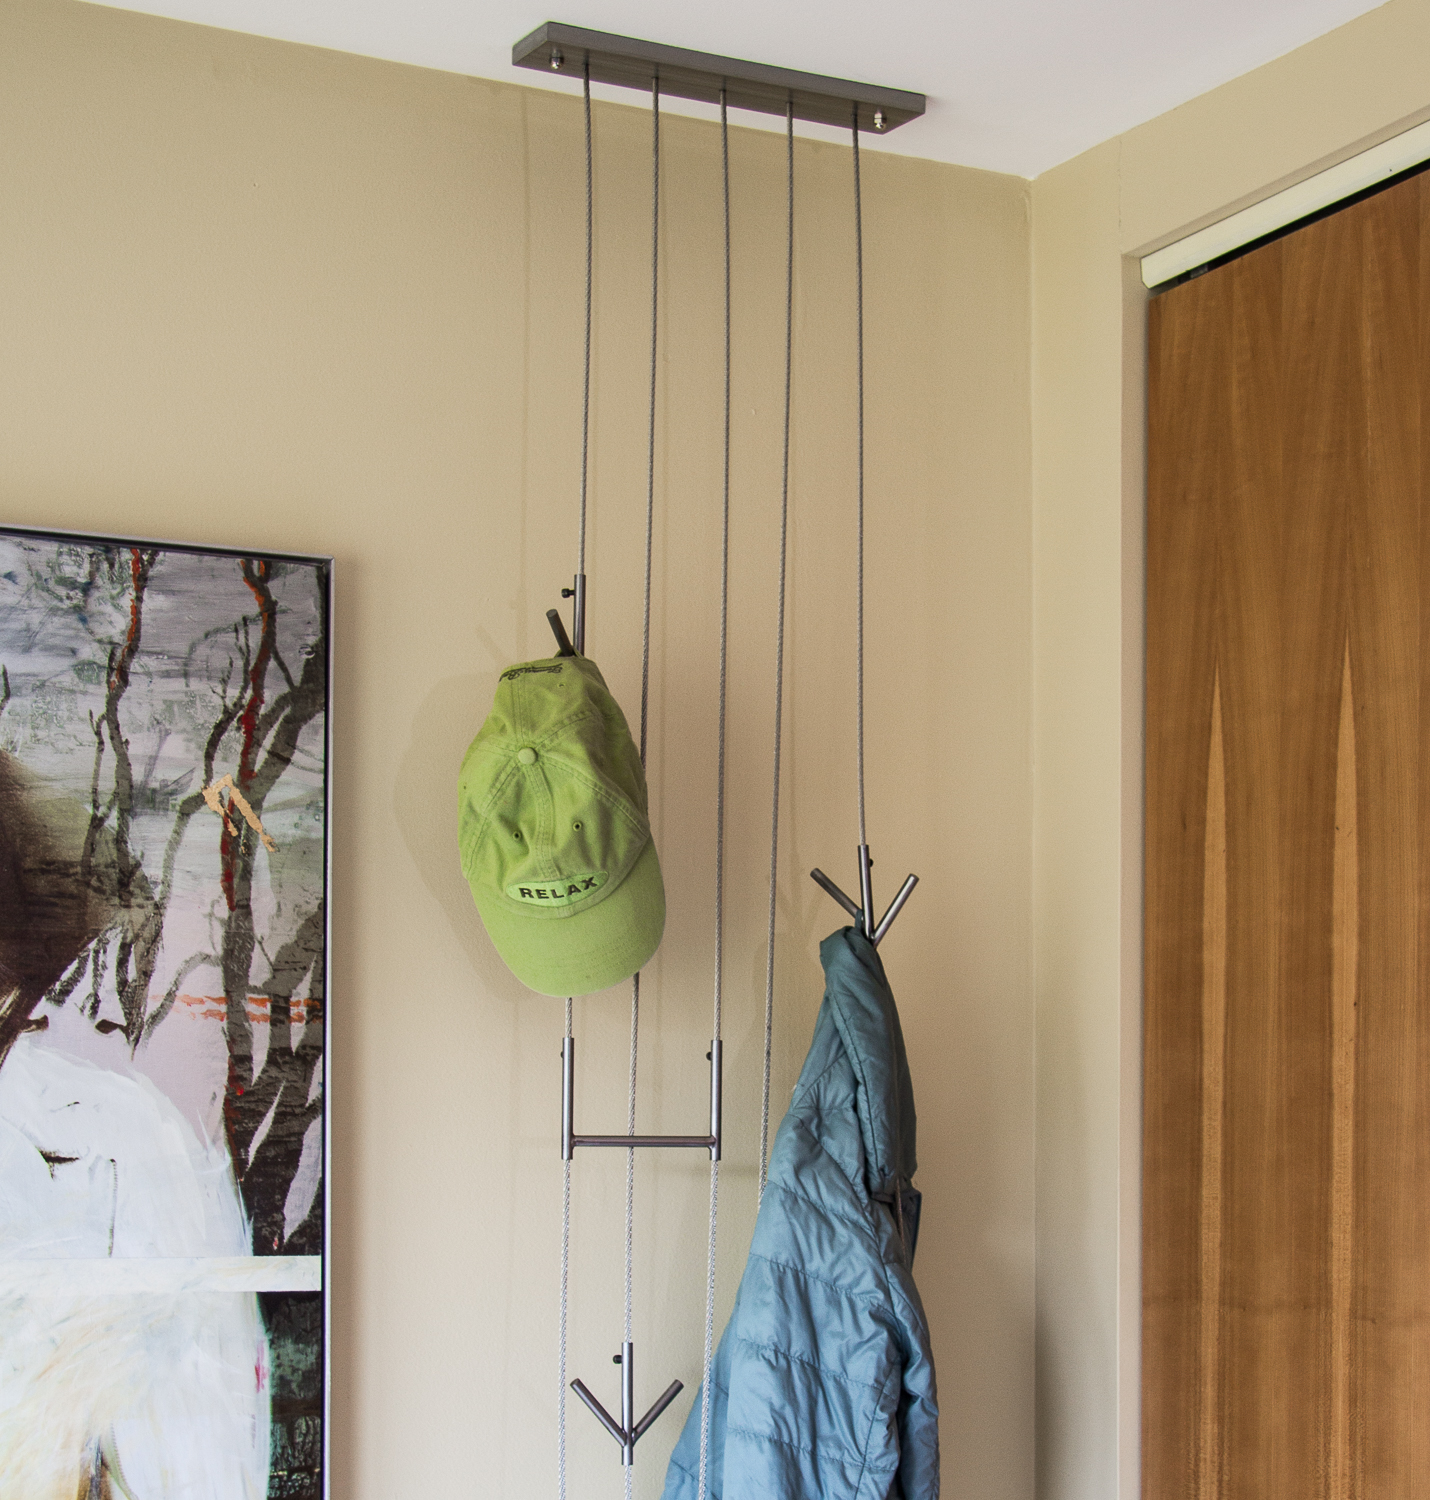 The  Waterfall  Hooked system has cool adjustable hooks. Add as many as you like!